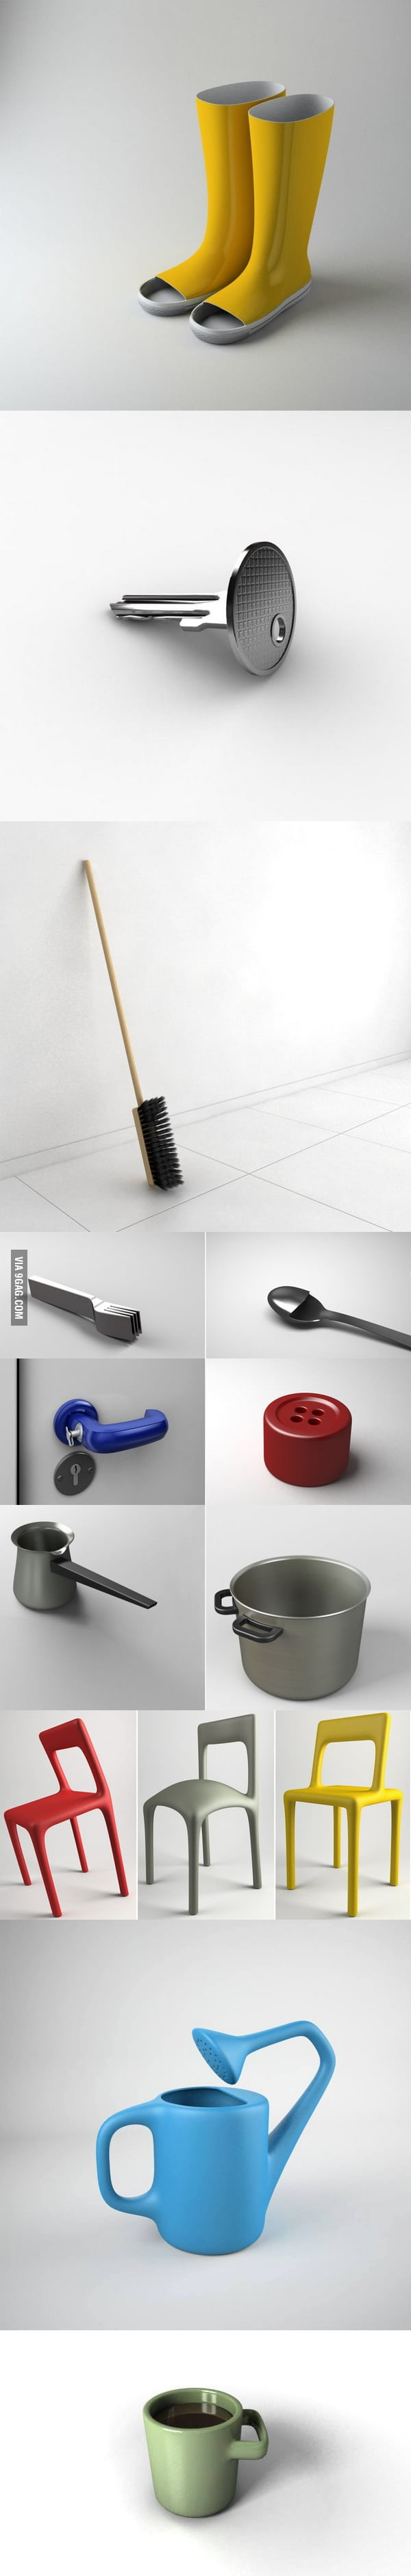 """Who needs conformist functional design when you have these? (""""The Uncomfortable"""" project by Katerina Kamprani)"""